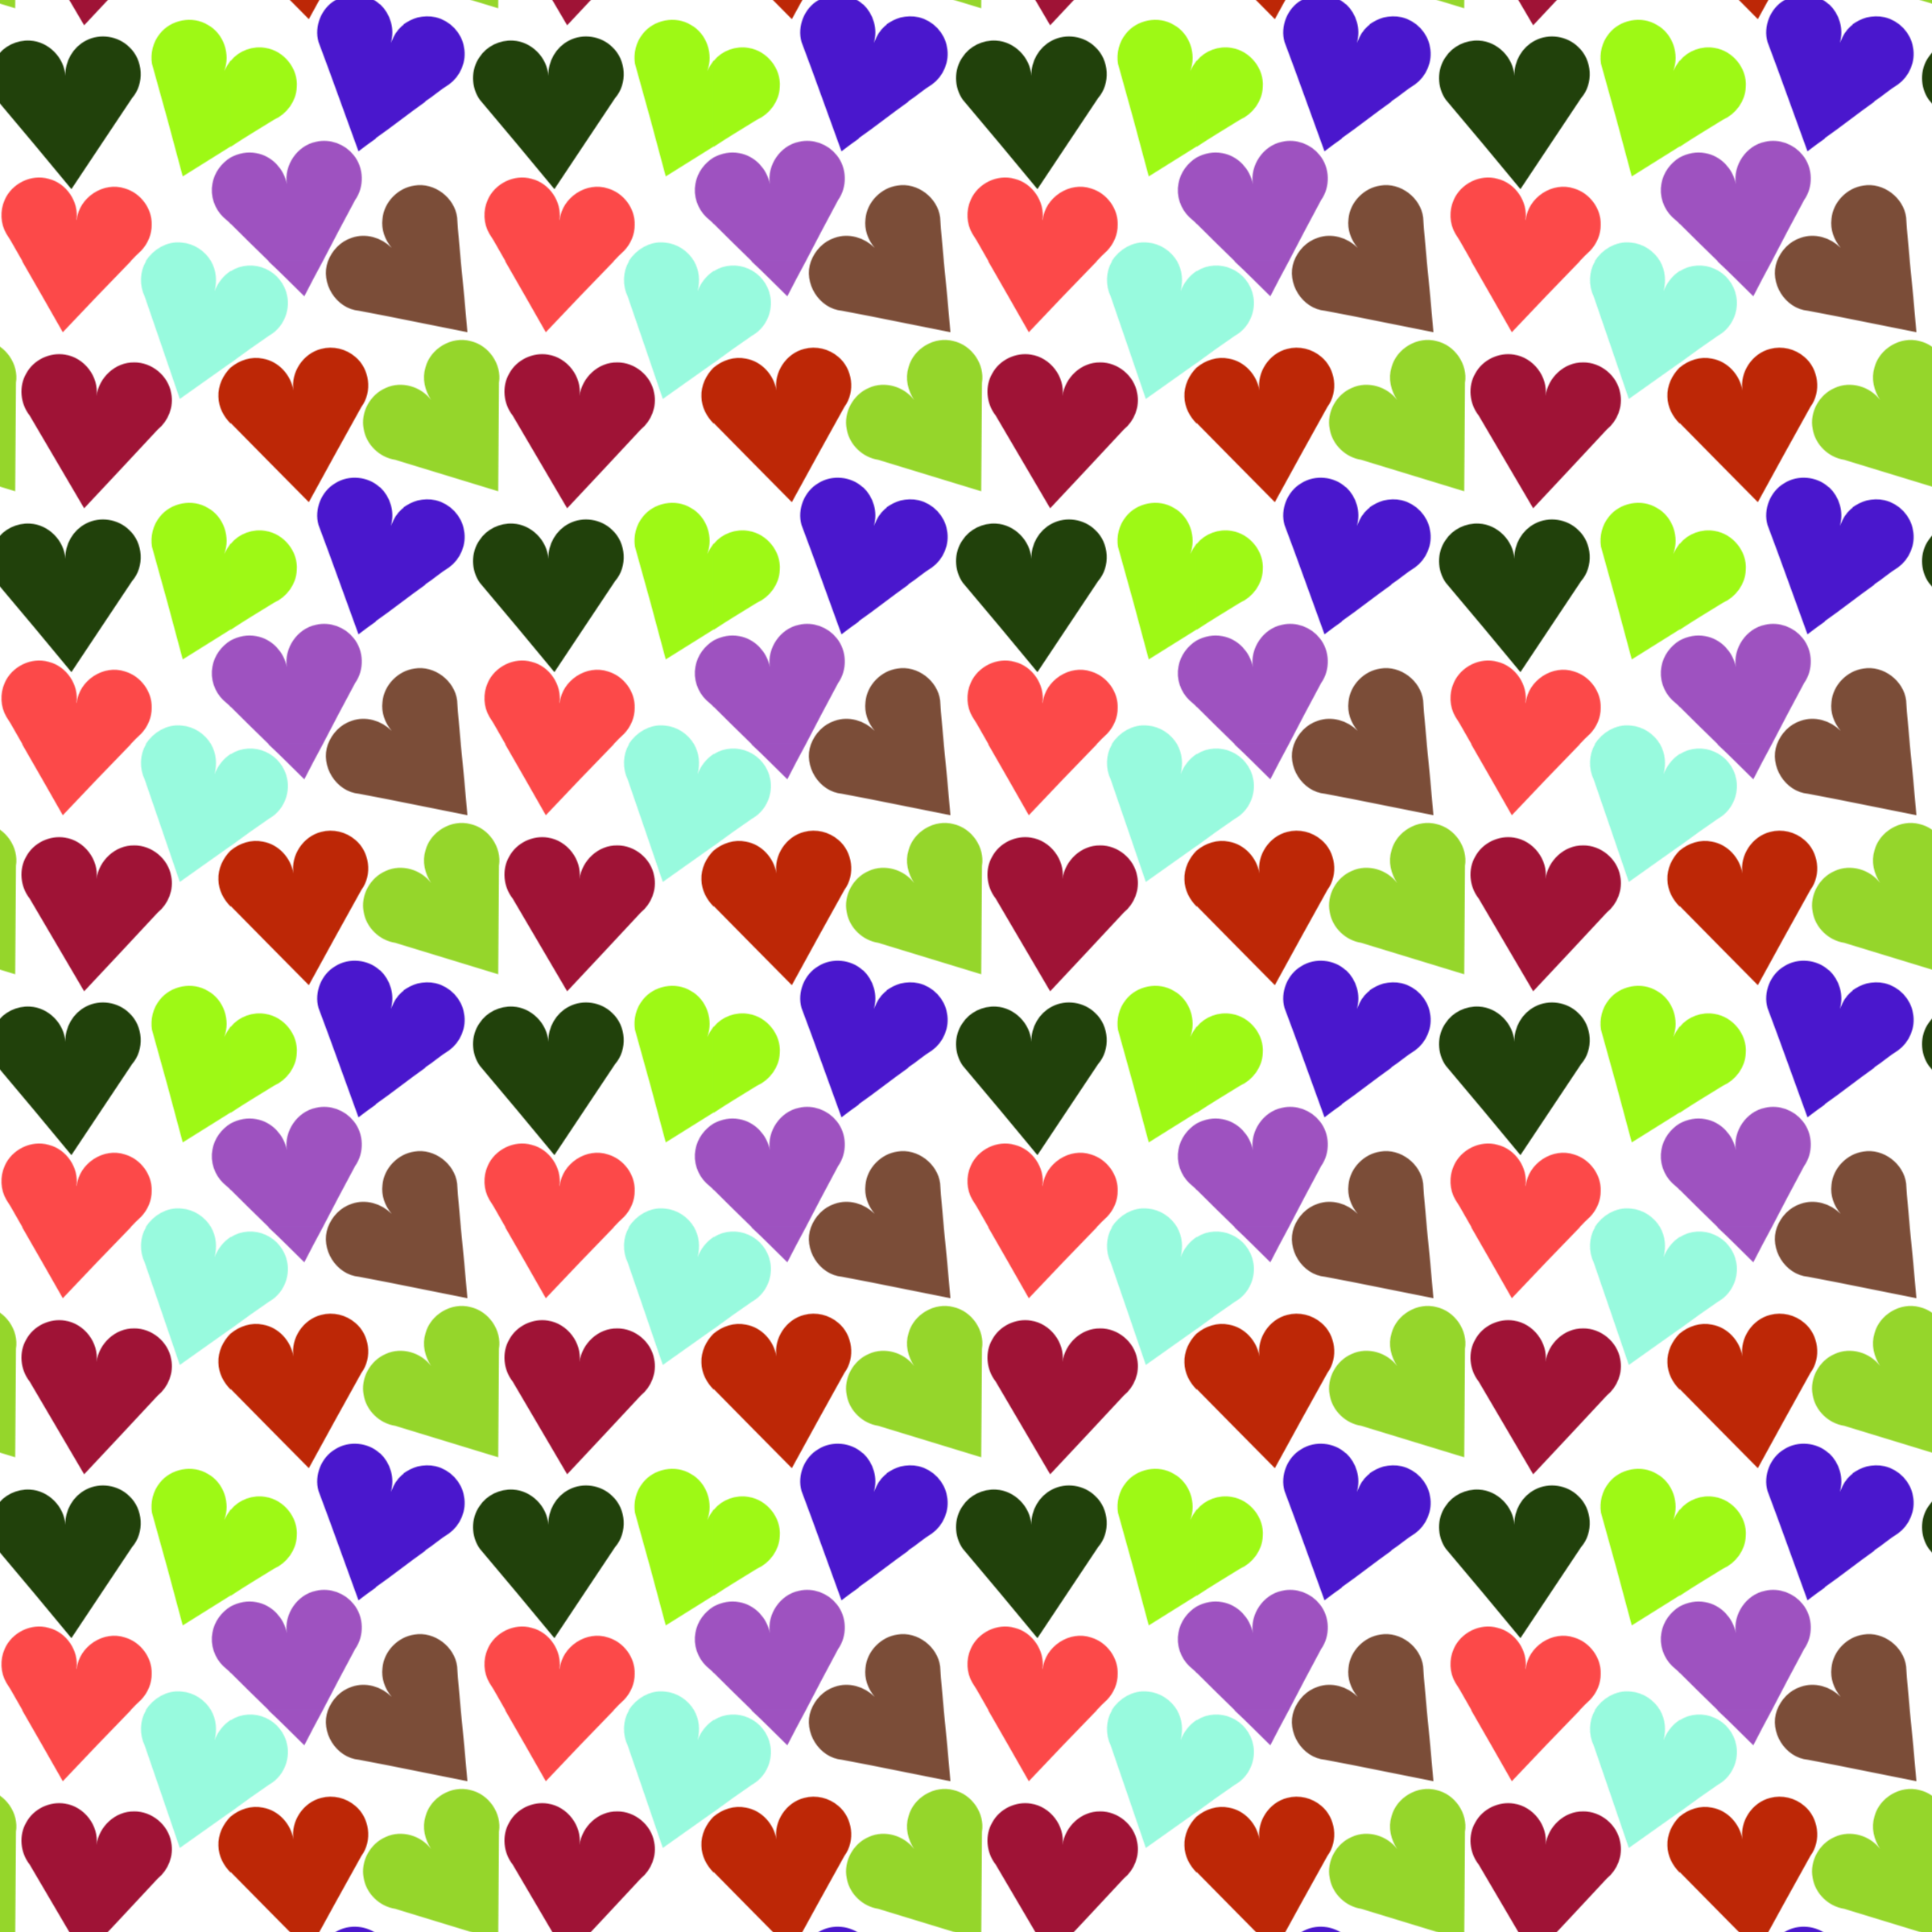 Heart pattern by Firkin